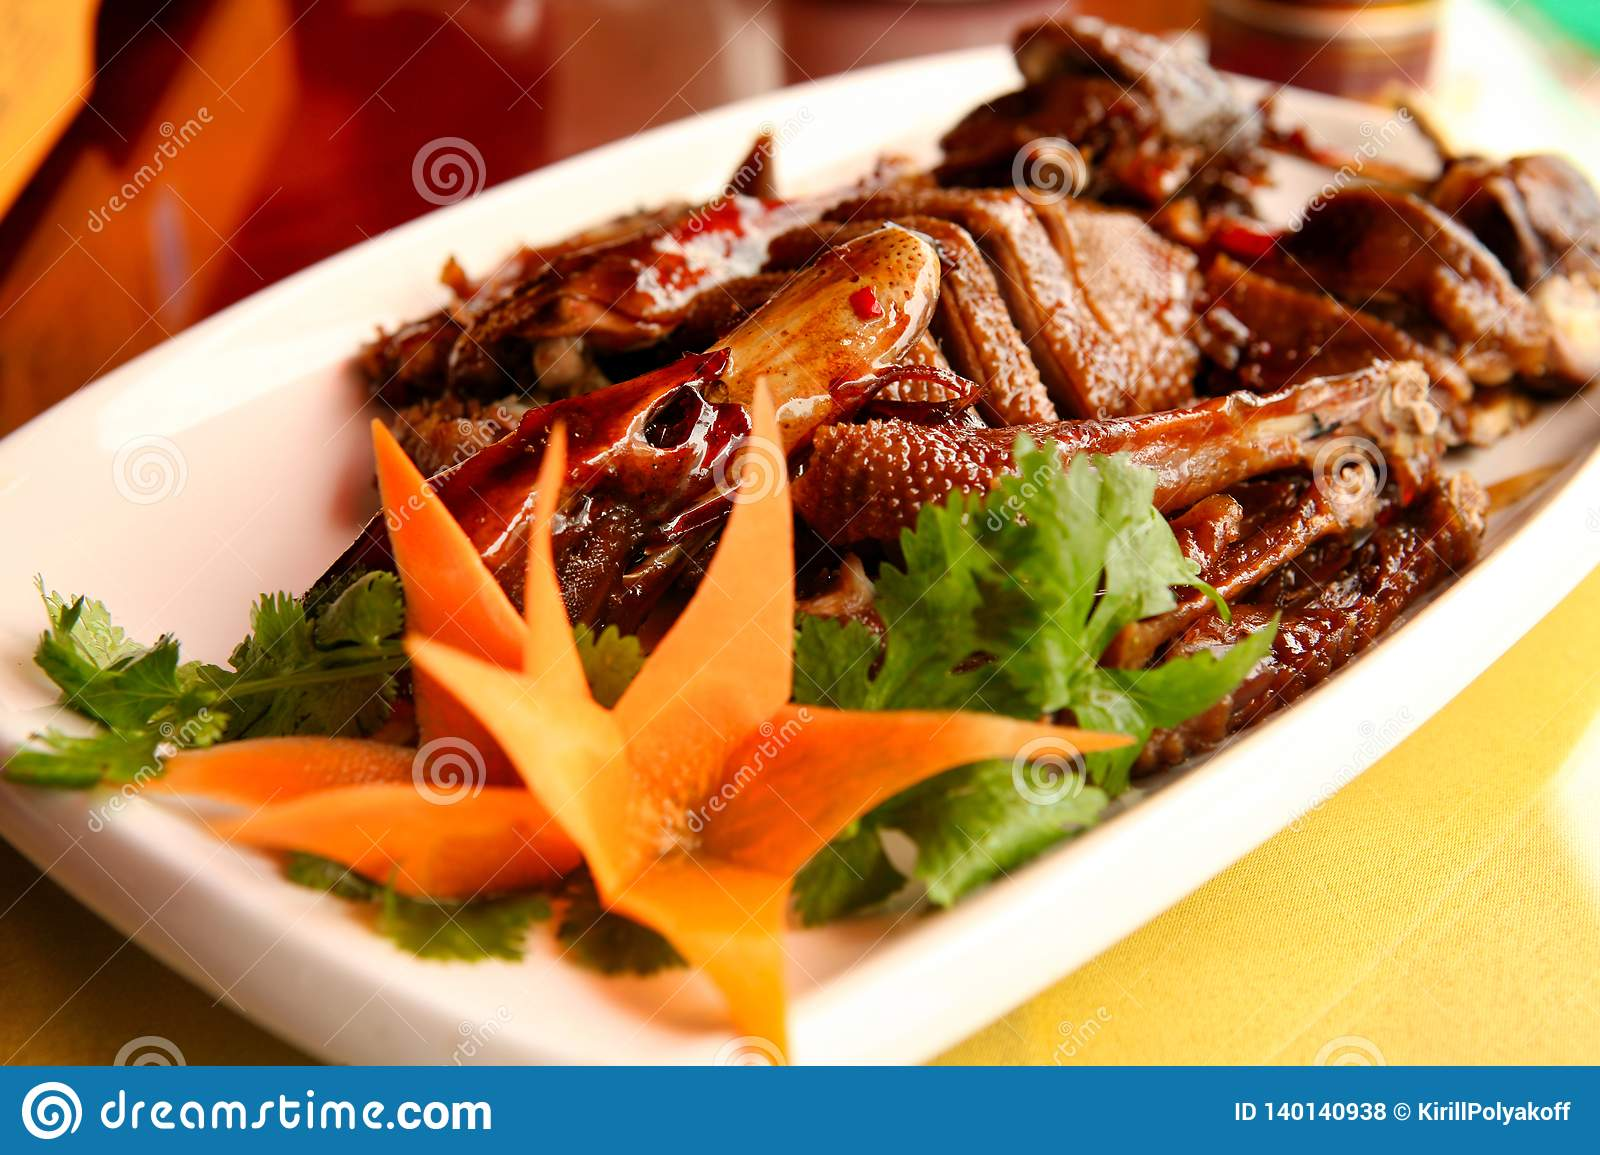 One of the most famous dishes in Chinese cuisine is the Peking duck.